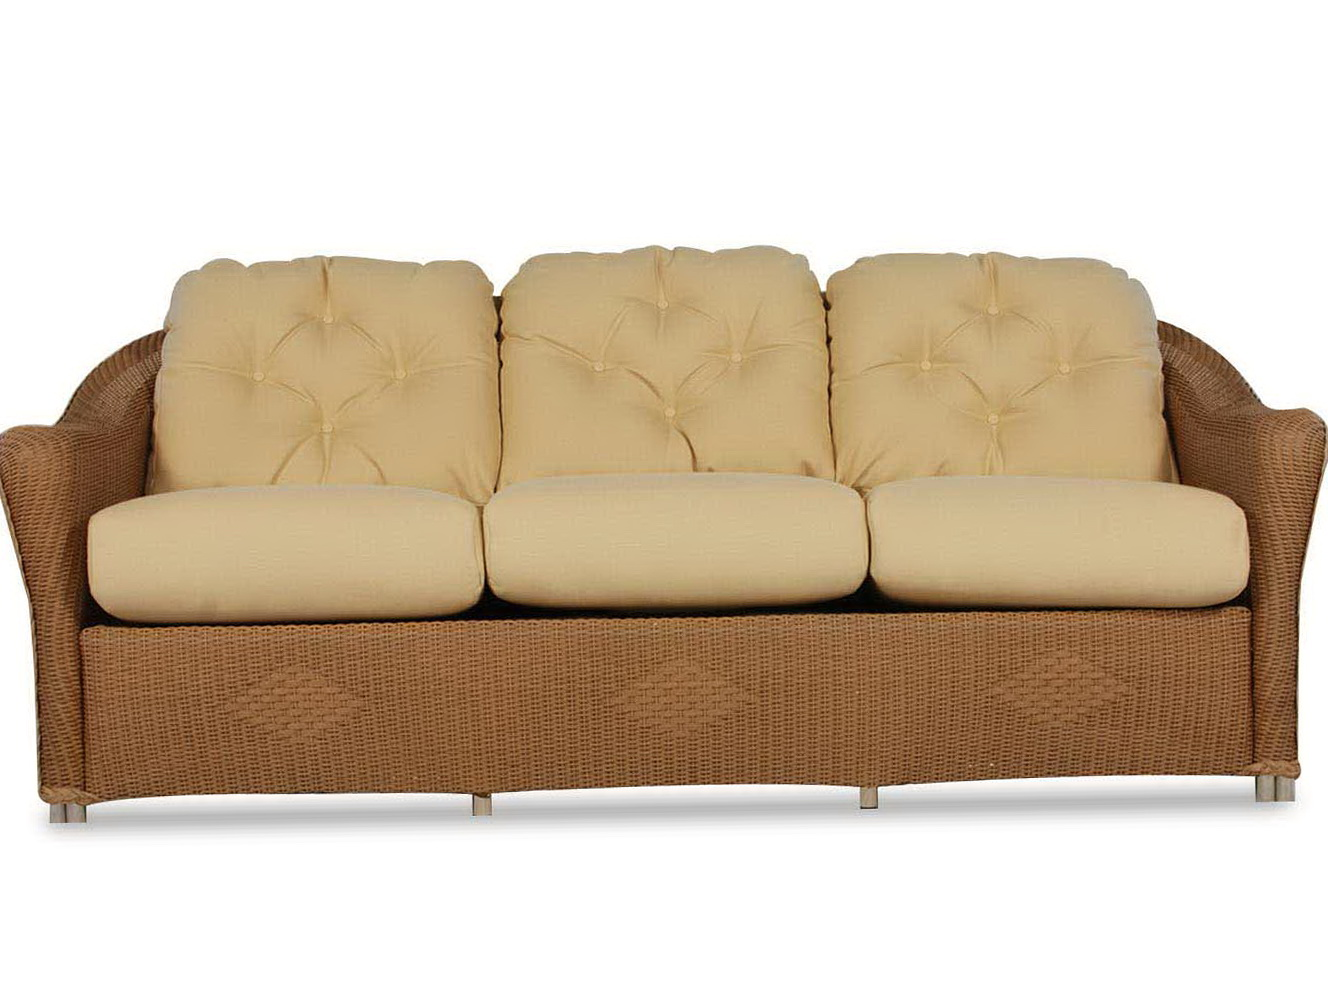 Sofa Seat Cushions Replacement